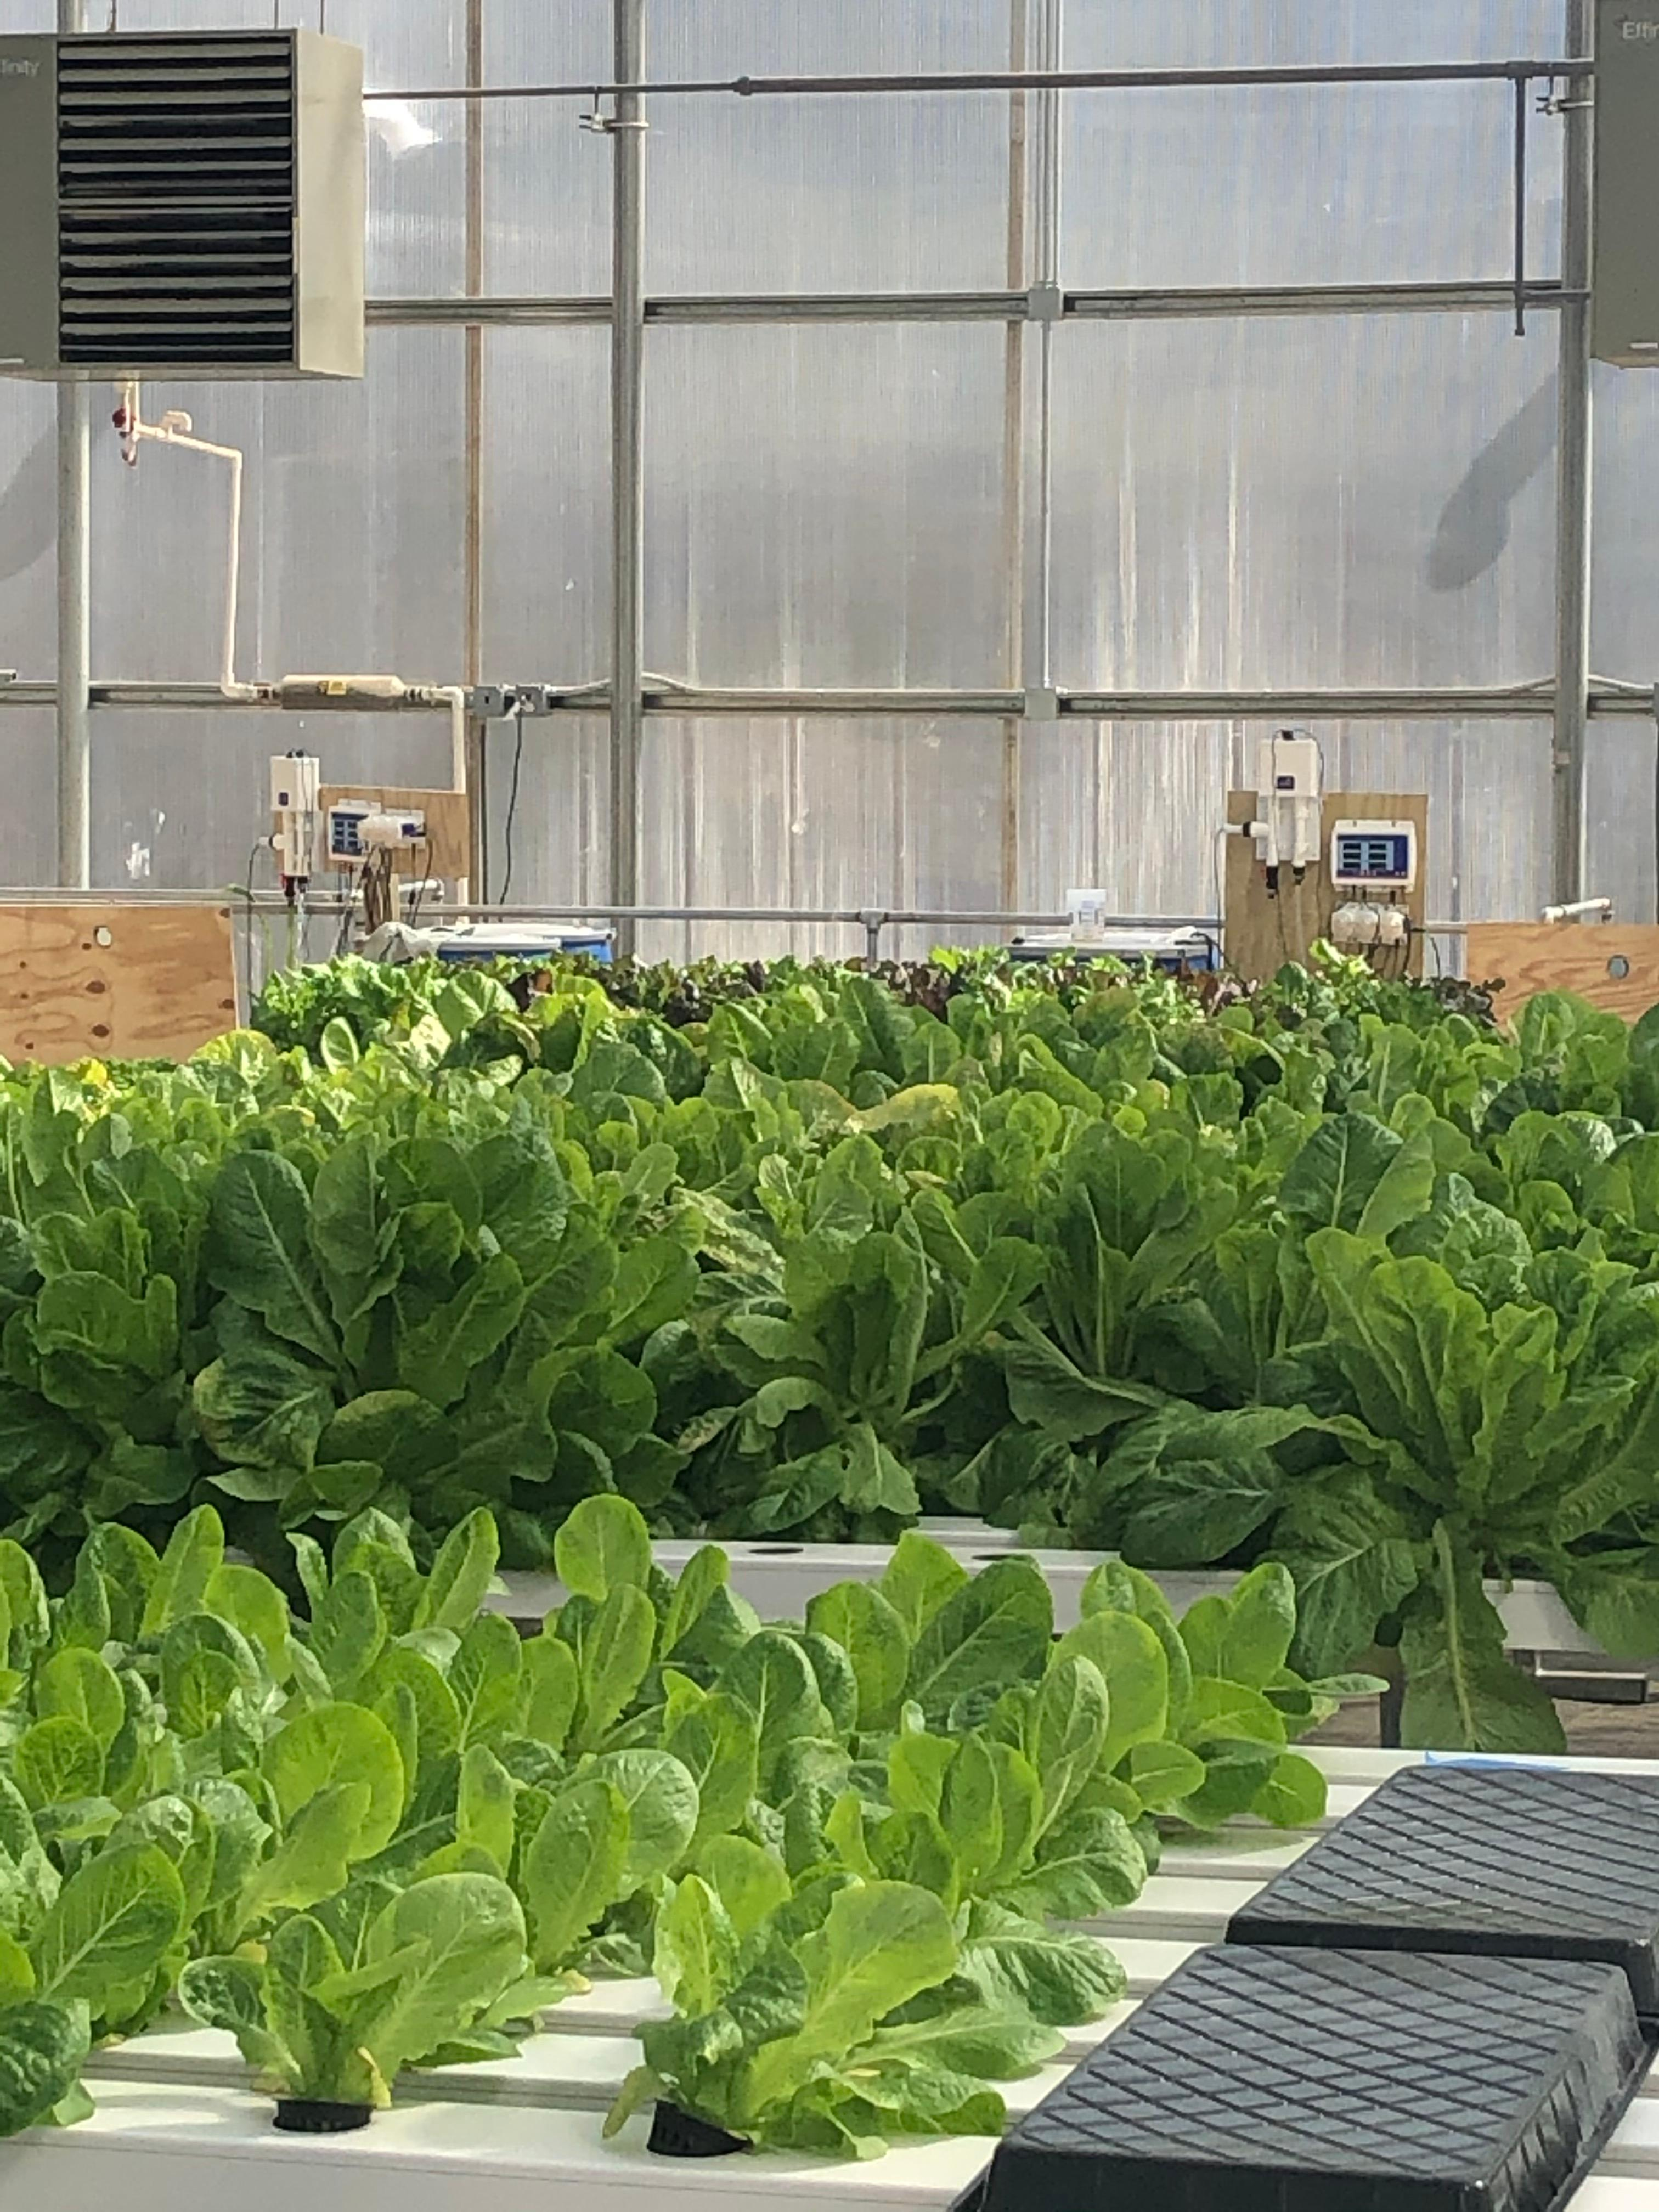 Leafy greens at the Mary's Land Farm greenhouse